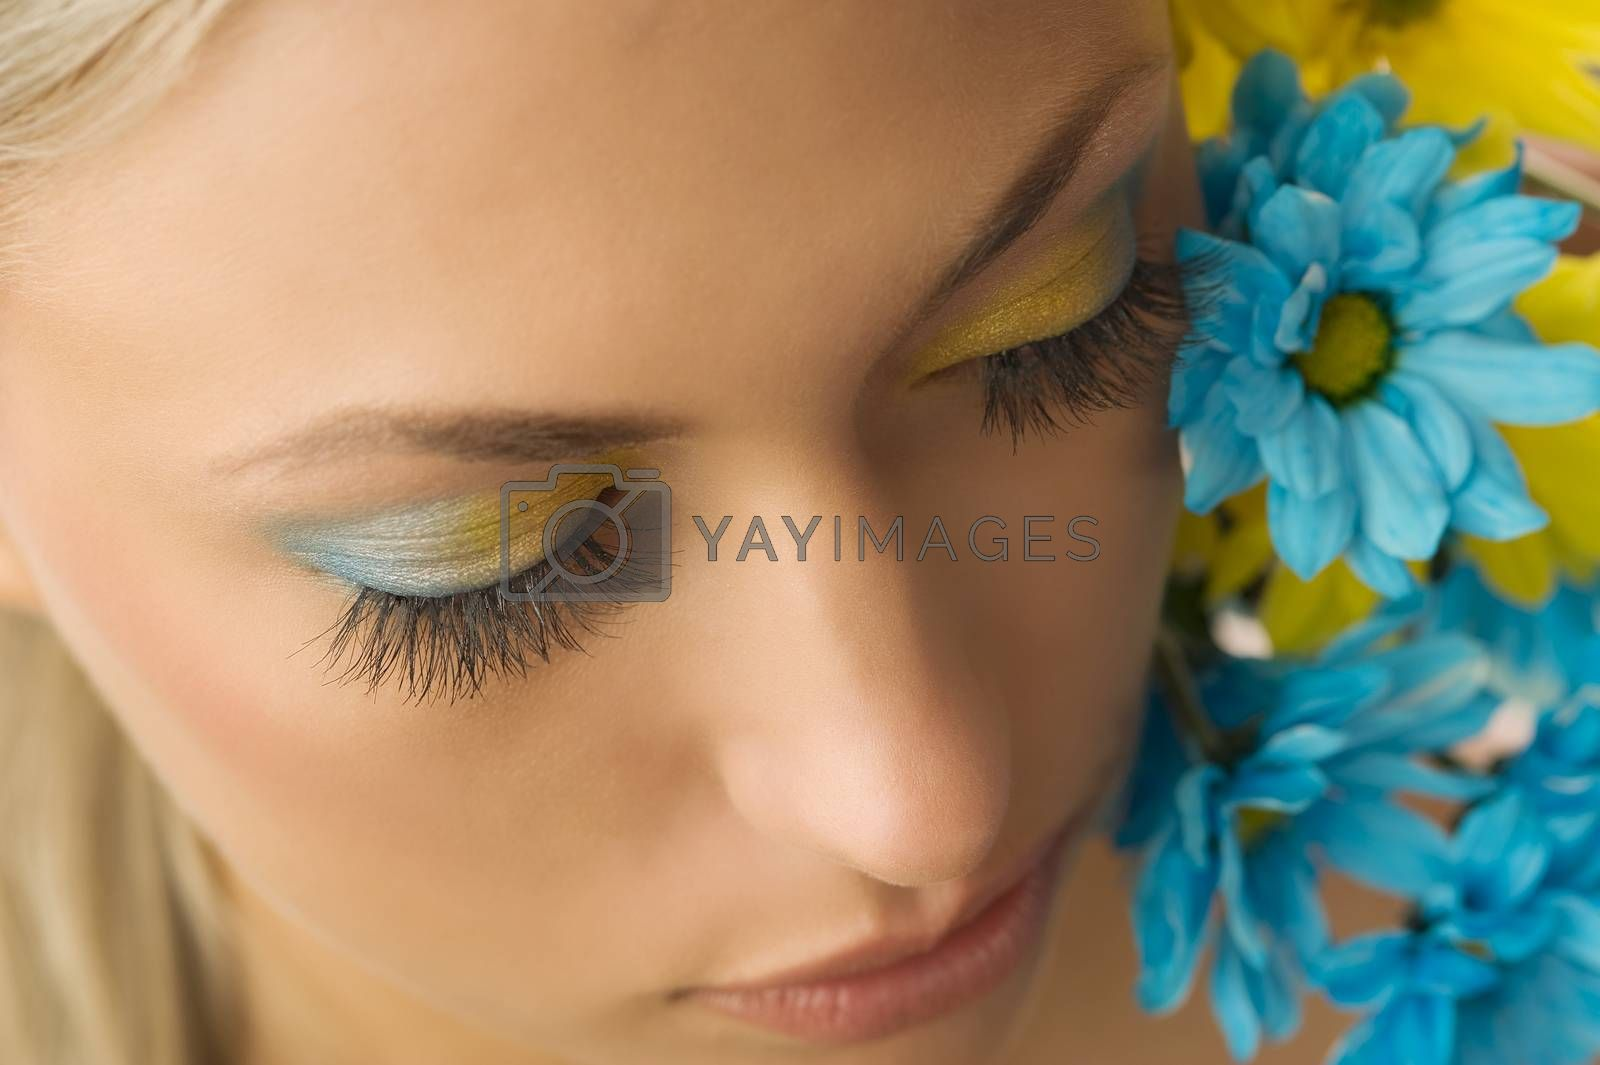 Royalty free image of yellow and blue flower by fotoCD